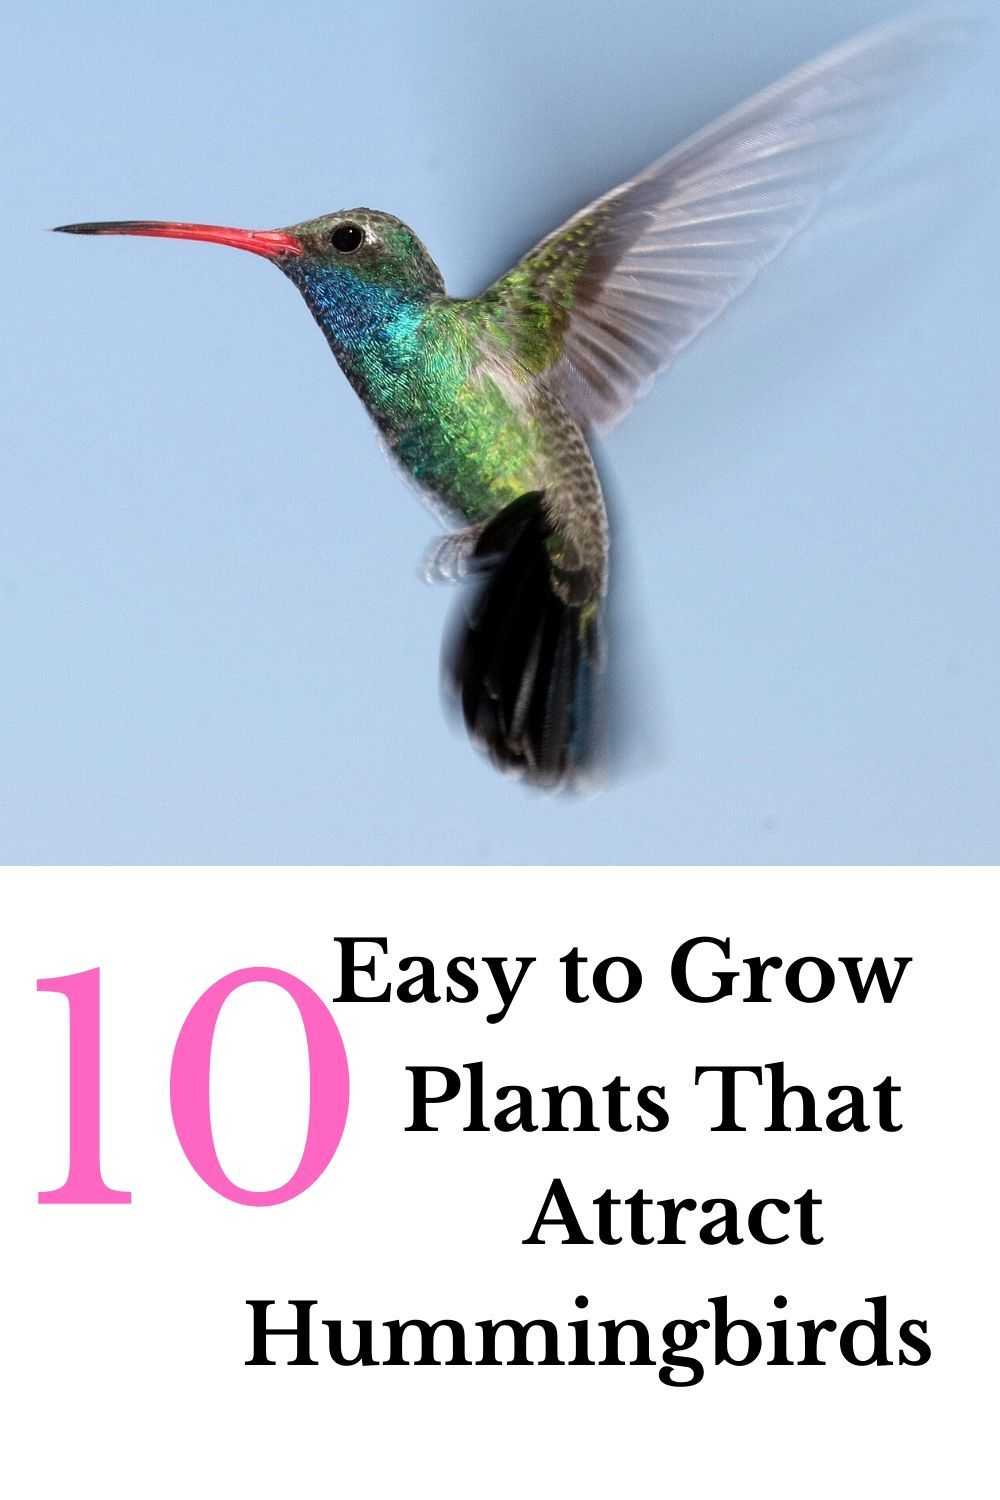 Top 10 Flowers to Attract Hummingbirds Garden Down South